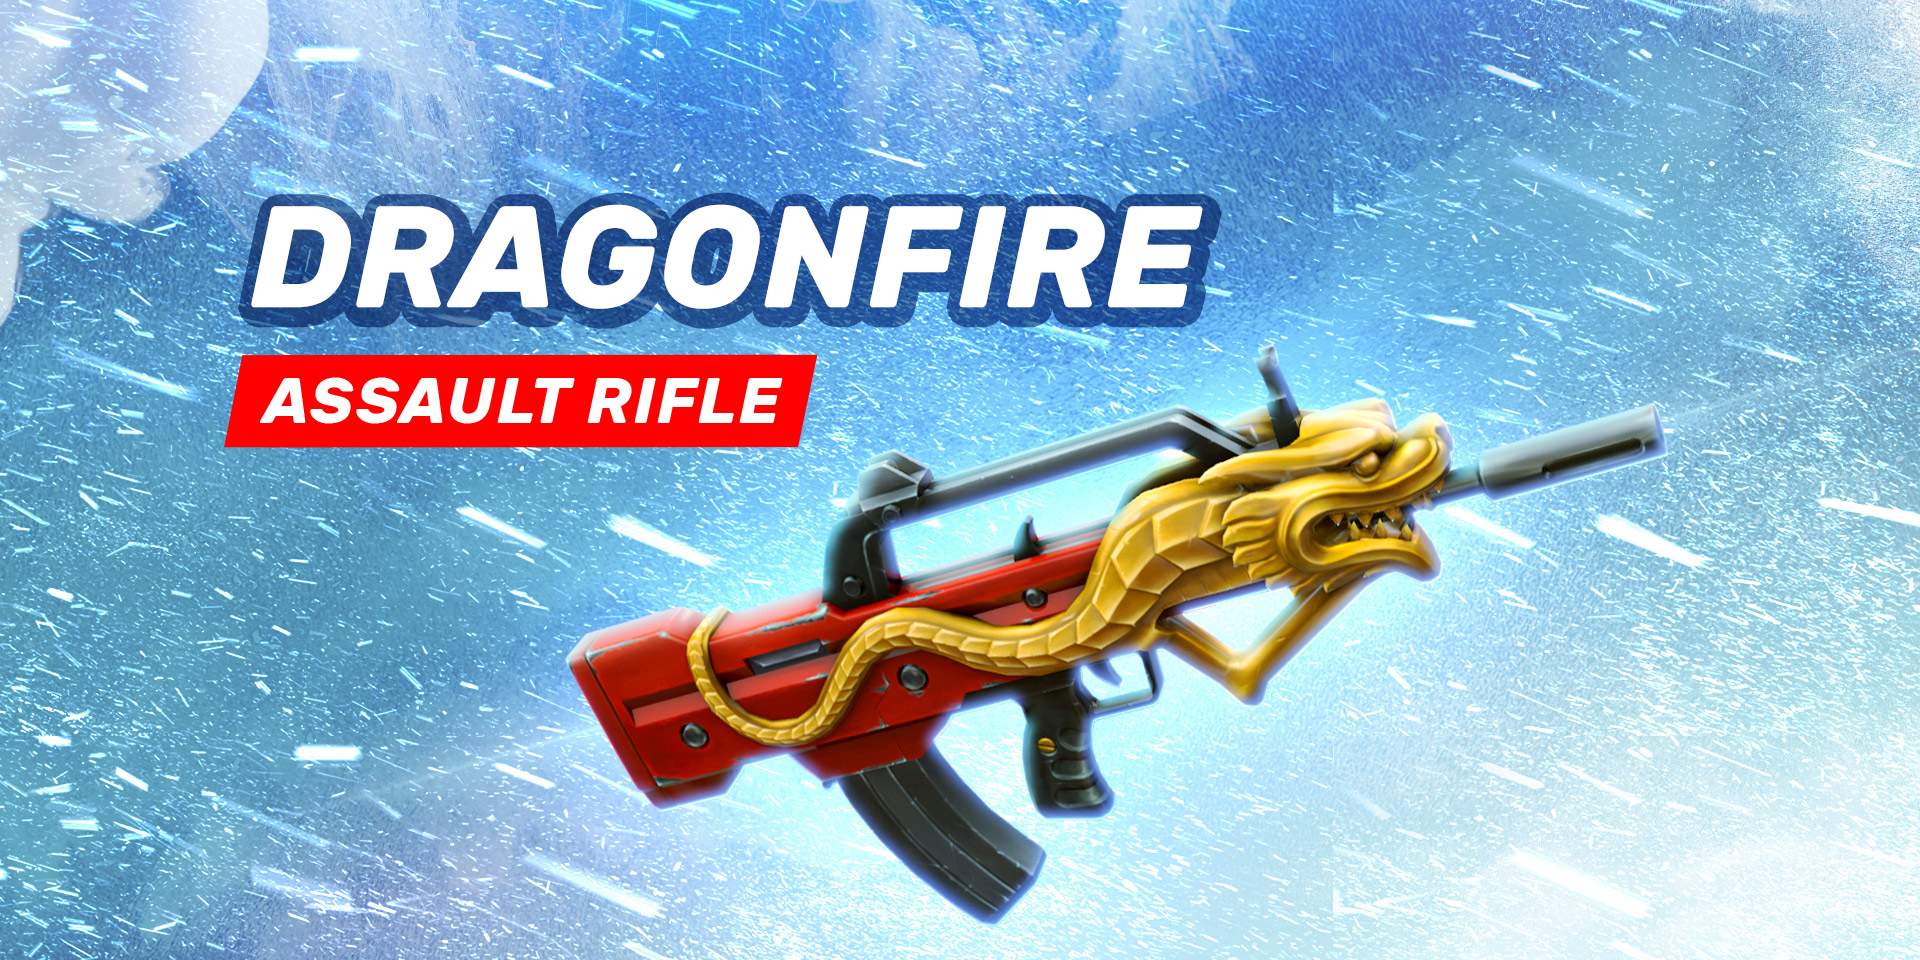 60082136c6f89_gunsopedia_Dragonfire_header_EN